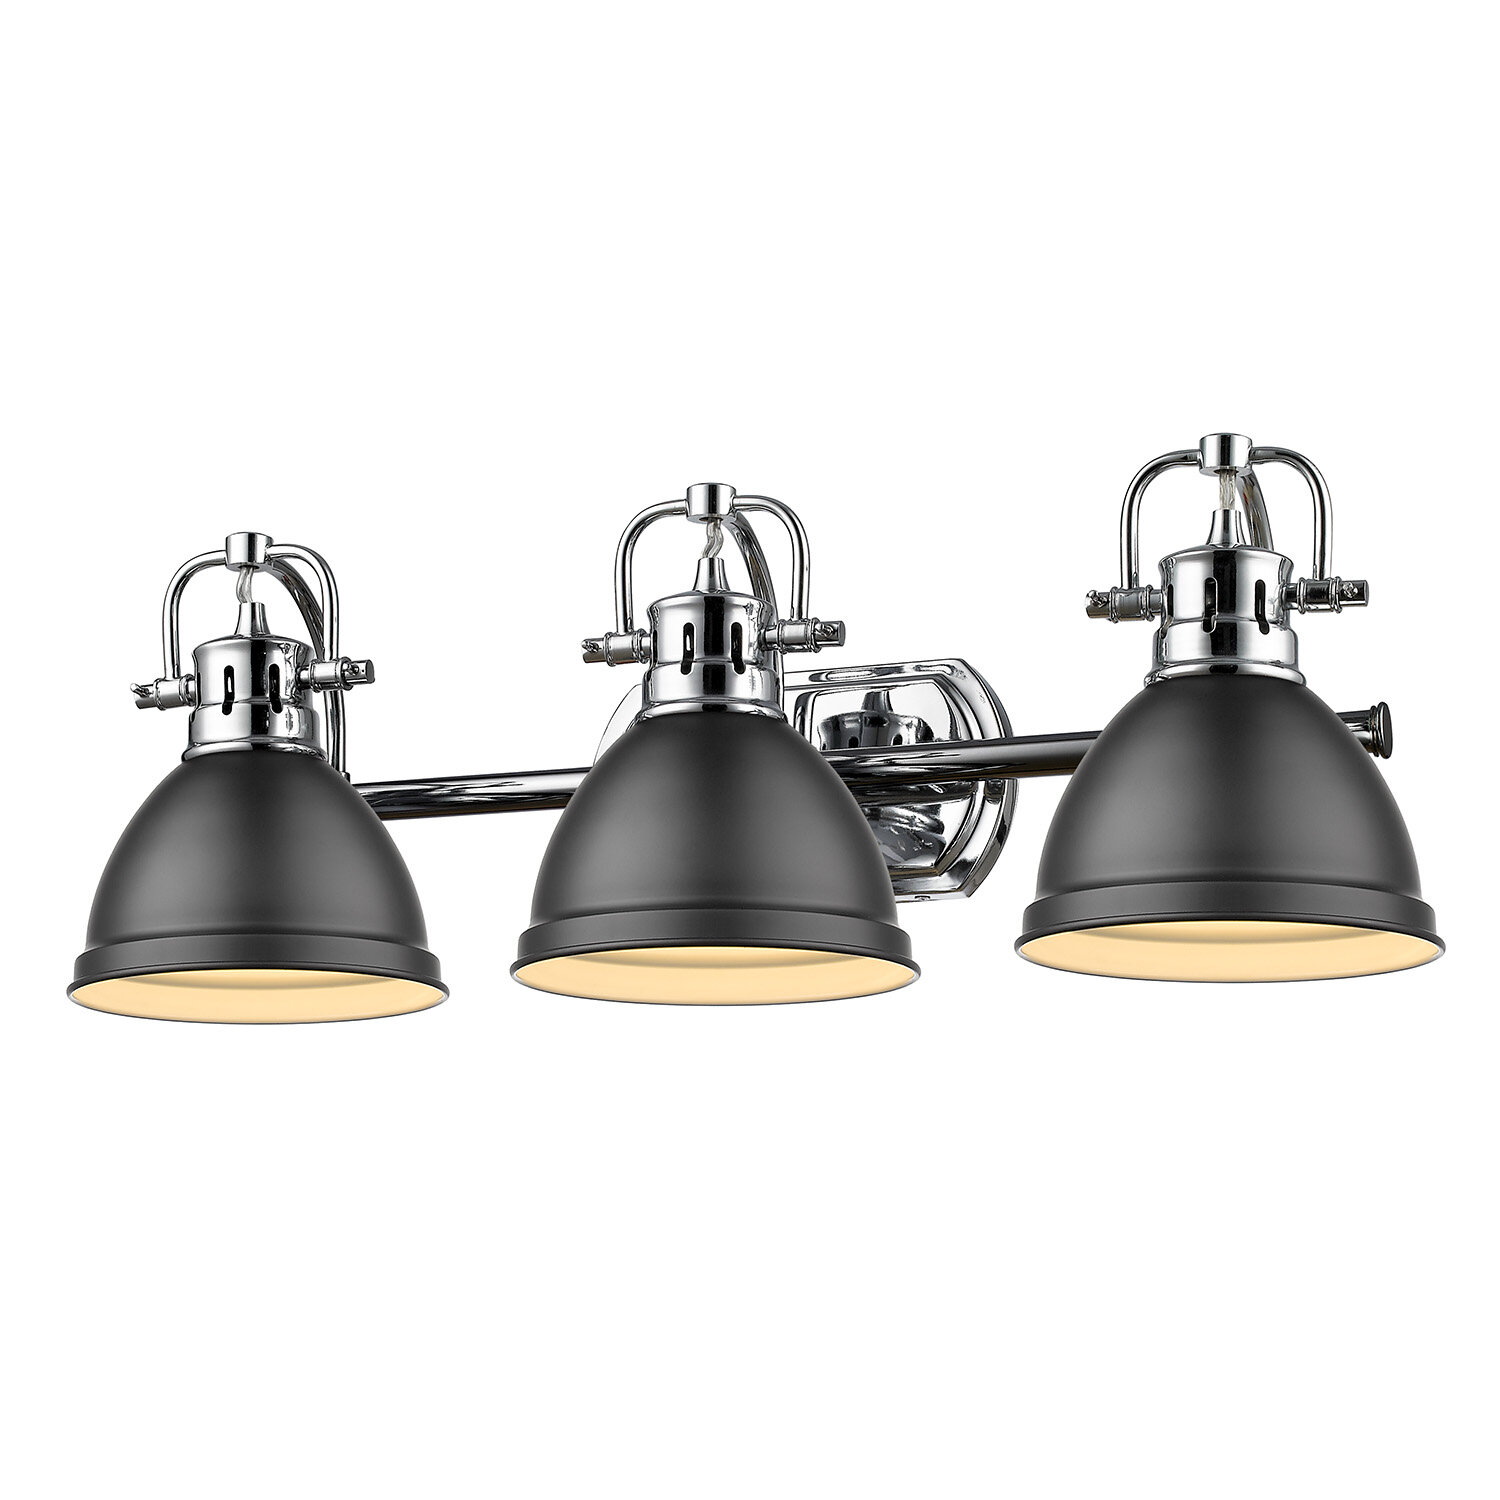 Chrome Vanity Lights Wayfair